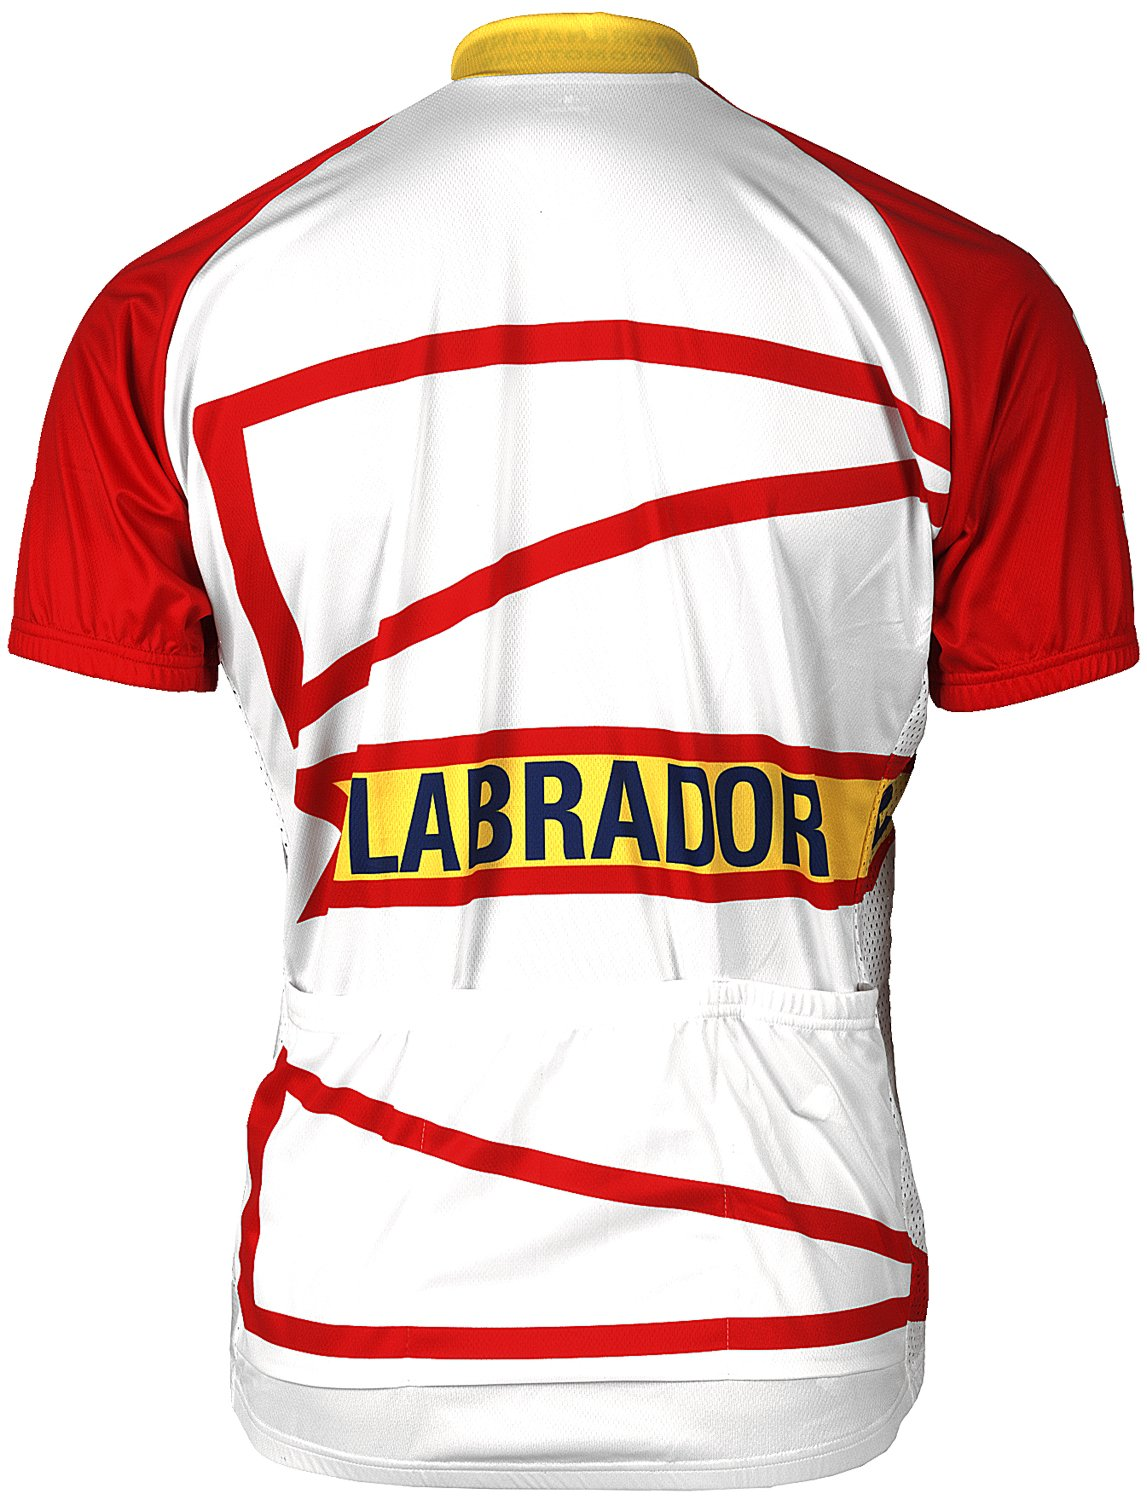 Adrenaline Promotions Canadian Provinces Newfoundland Cycling Jersey